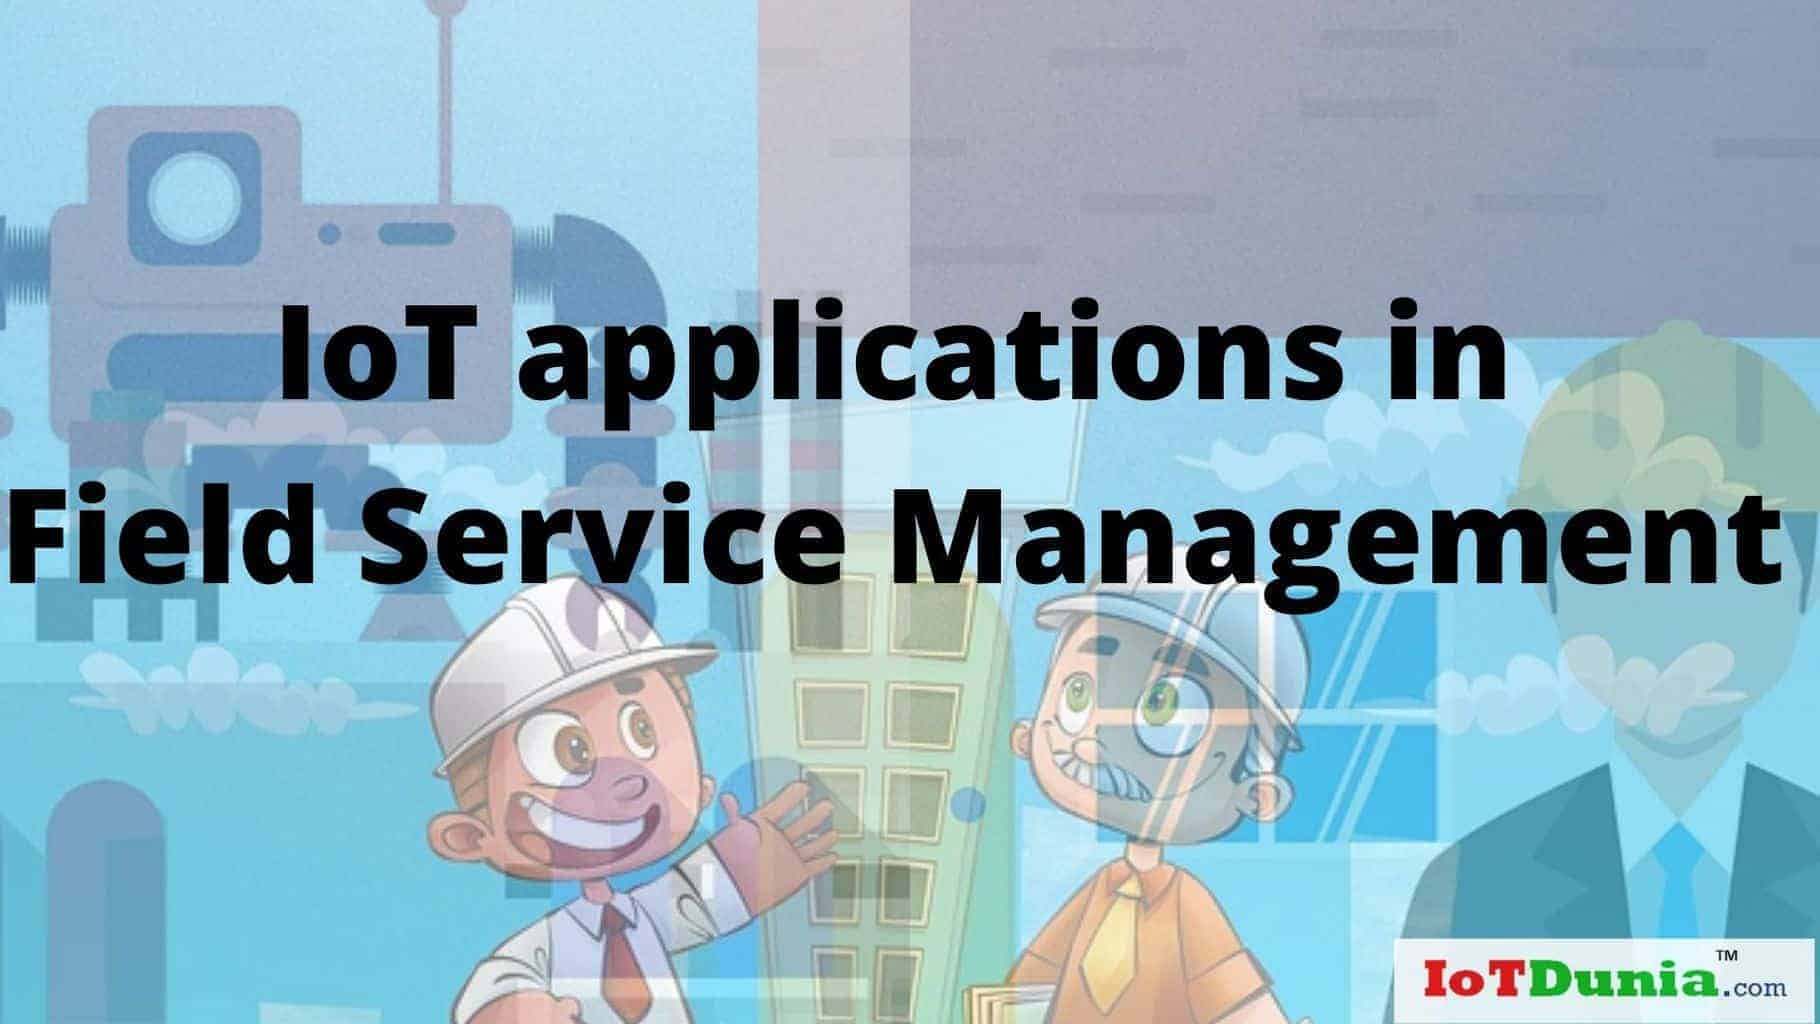 IoT applications in Field Service Management